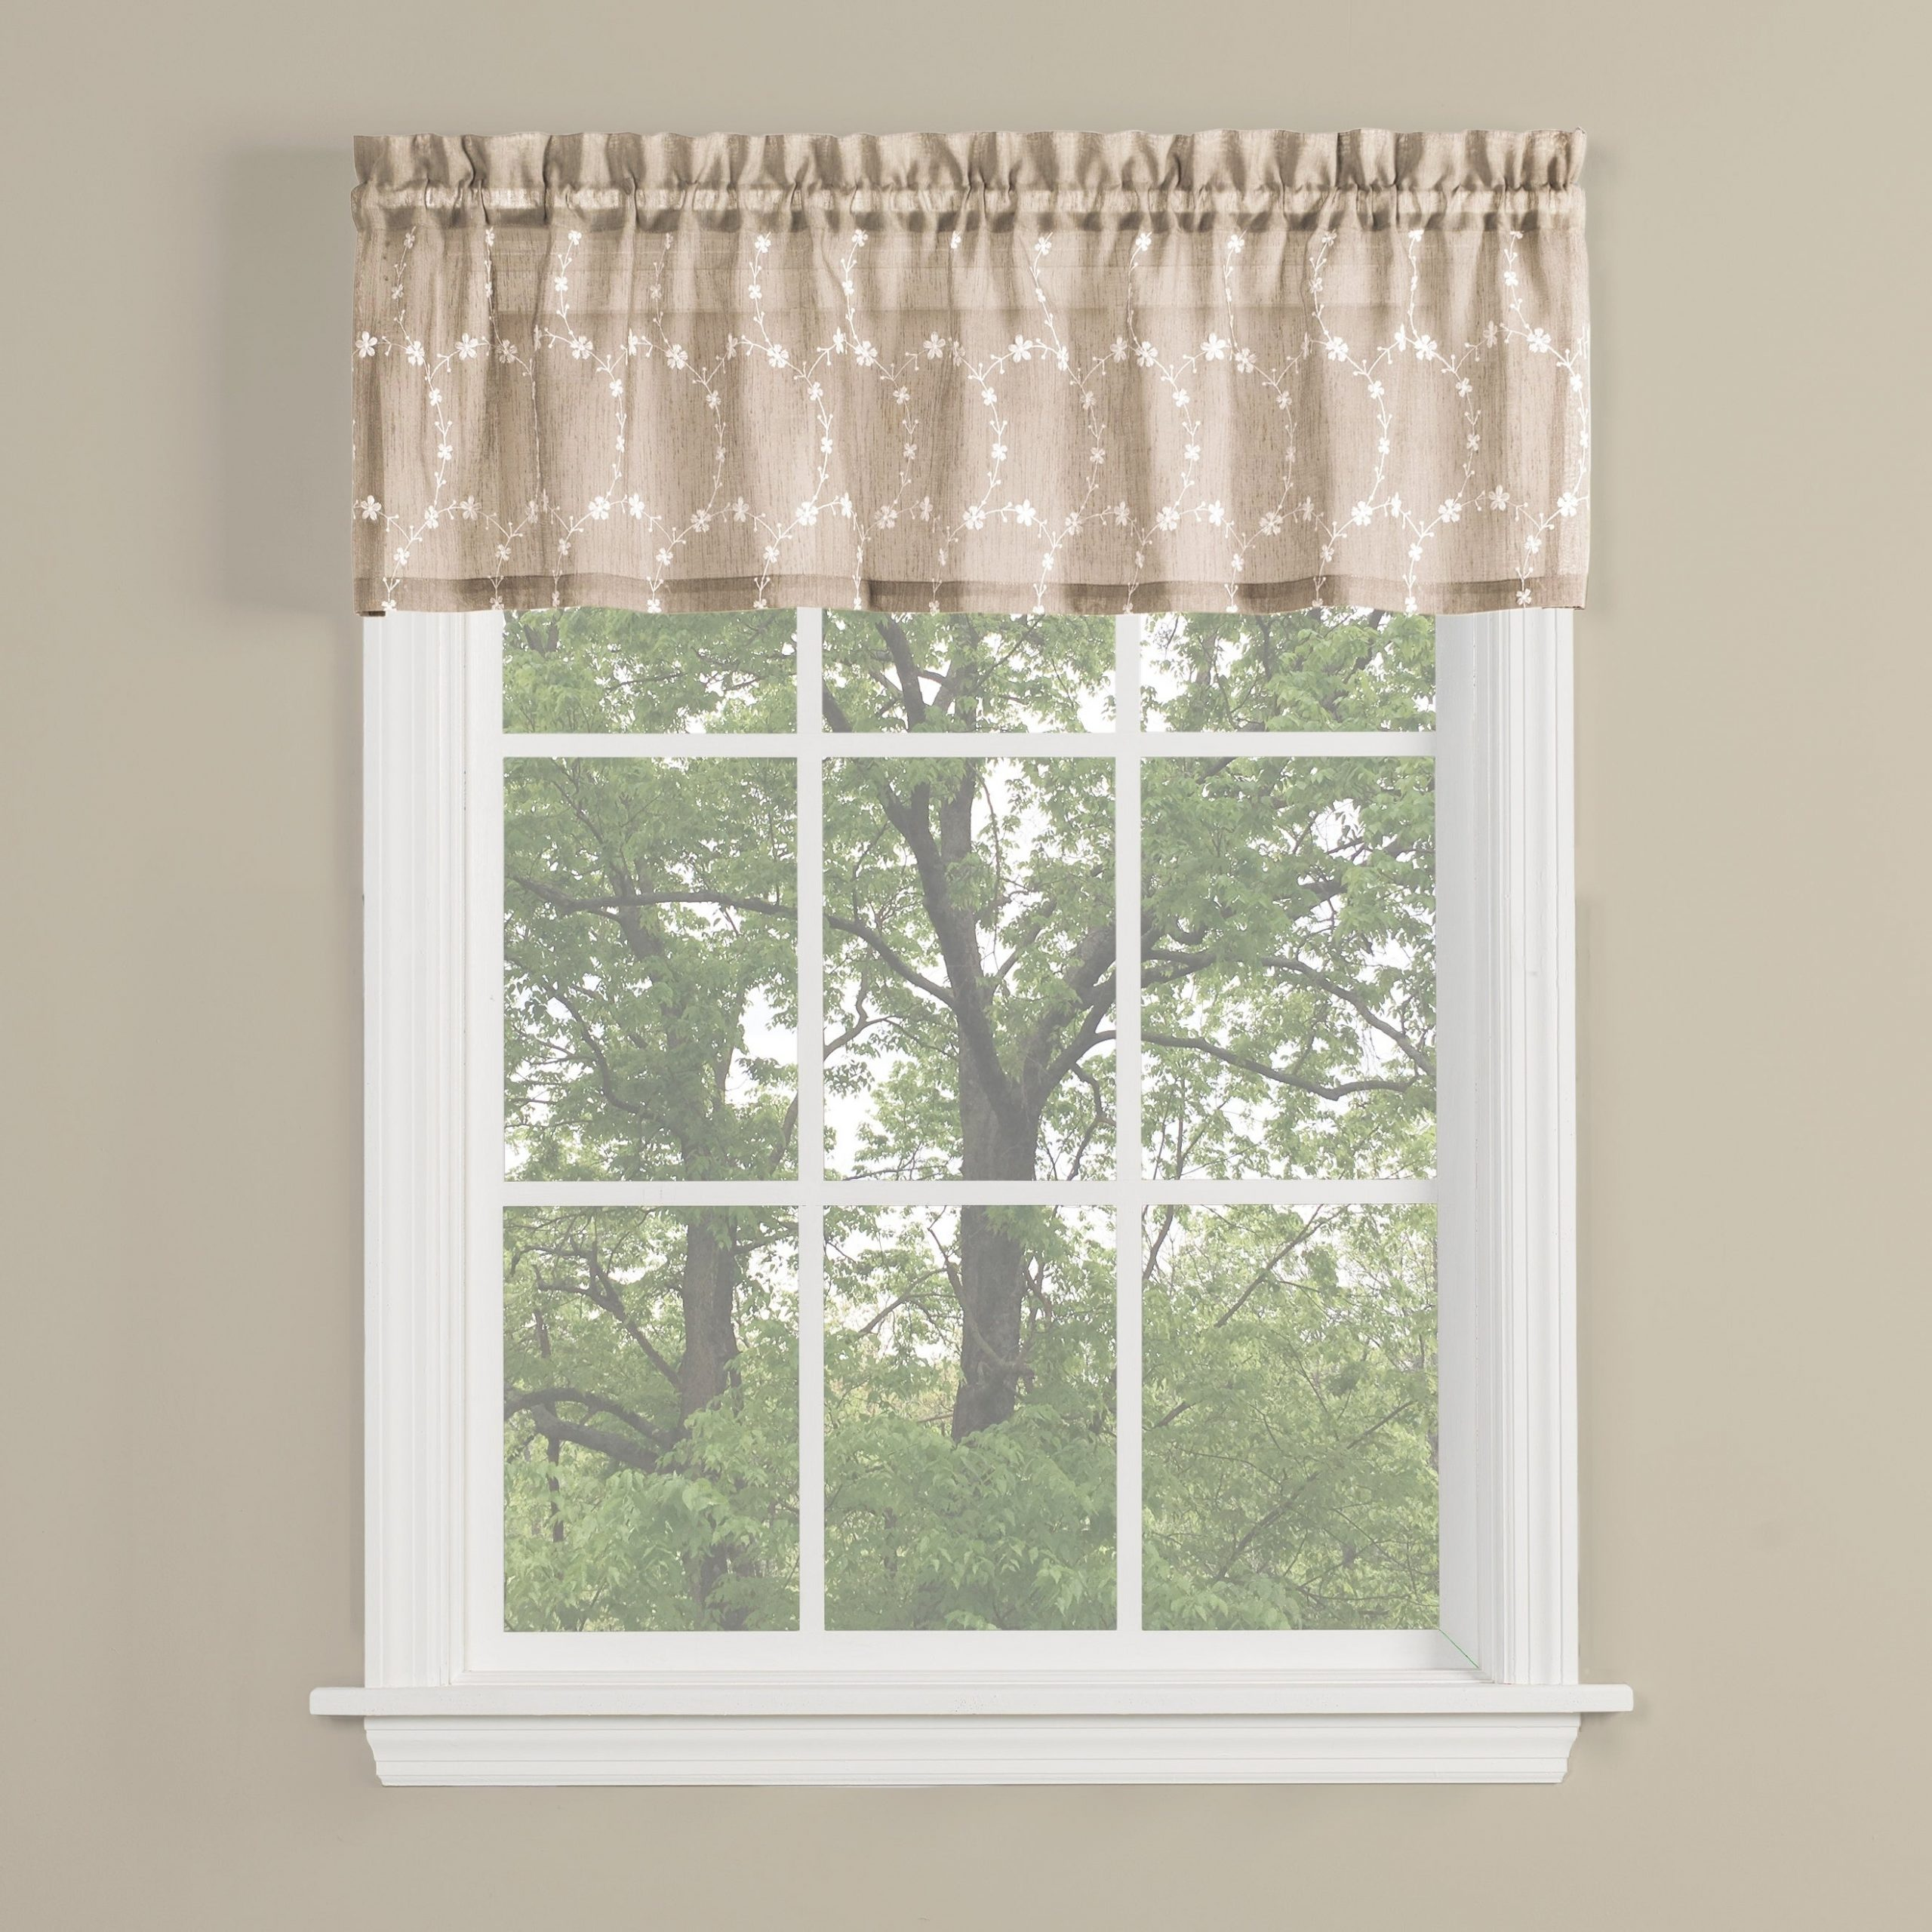 Skl Home Briarwood 13 Inch Valance In Wheat Pertaining To Latest Dexter 24 Inch Tier Pairs In Green (View 19 of 20)